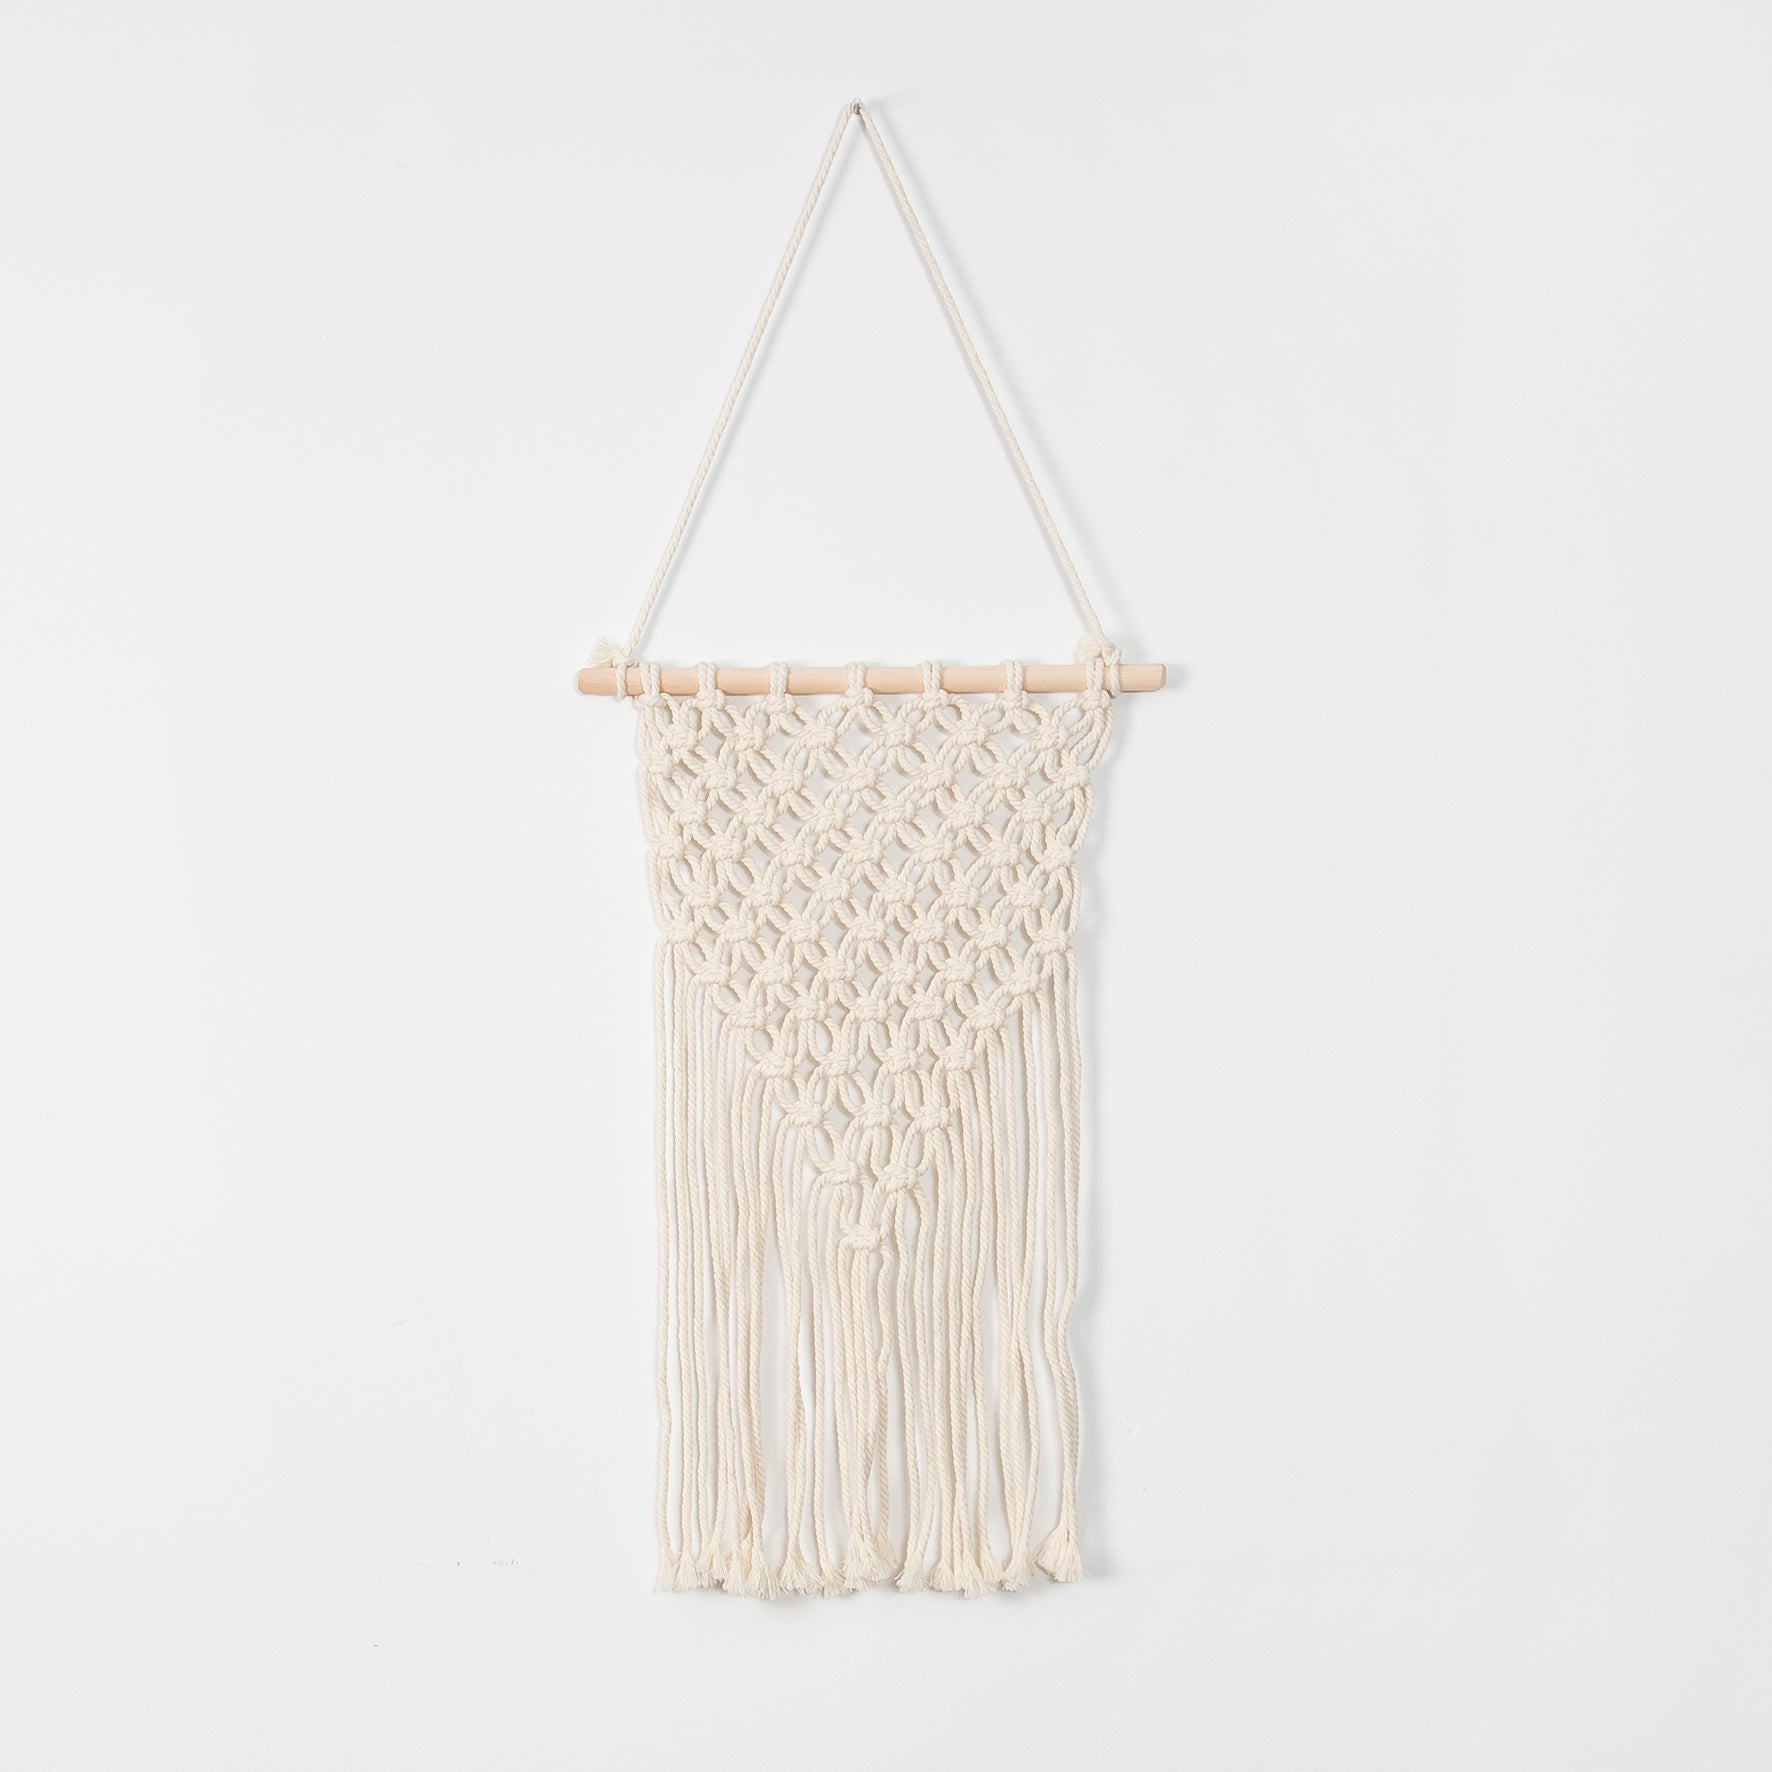 Macrame Wall Hanging Blondie Ardillasunited